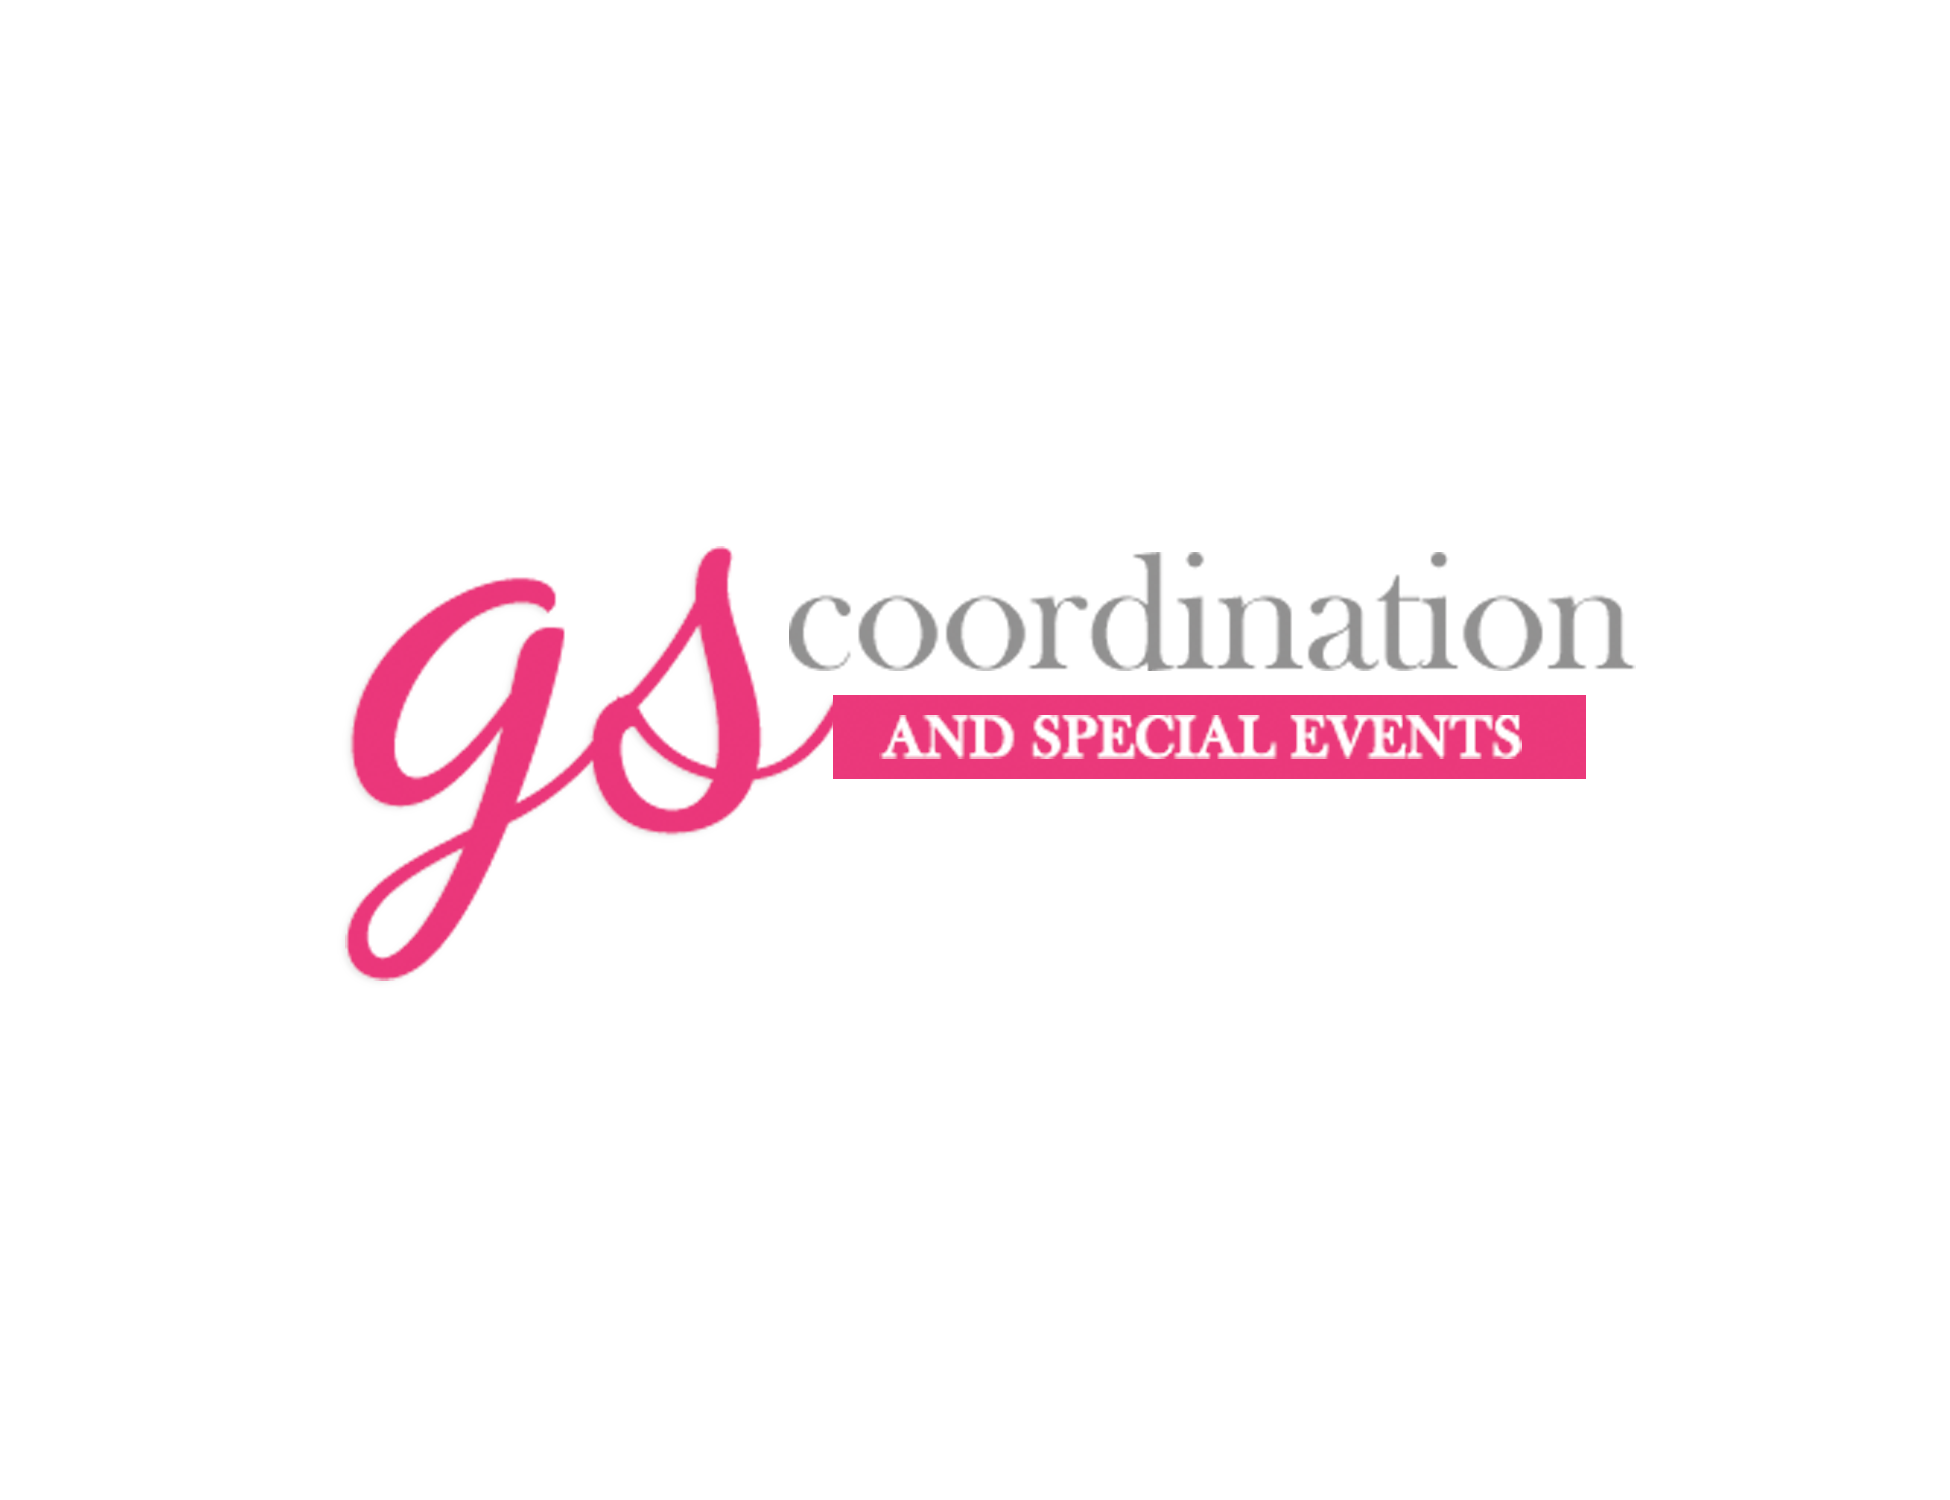 GS Coordination & Special Events